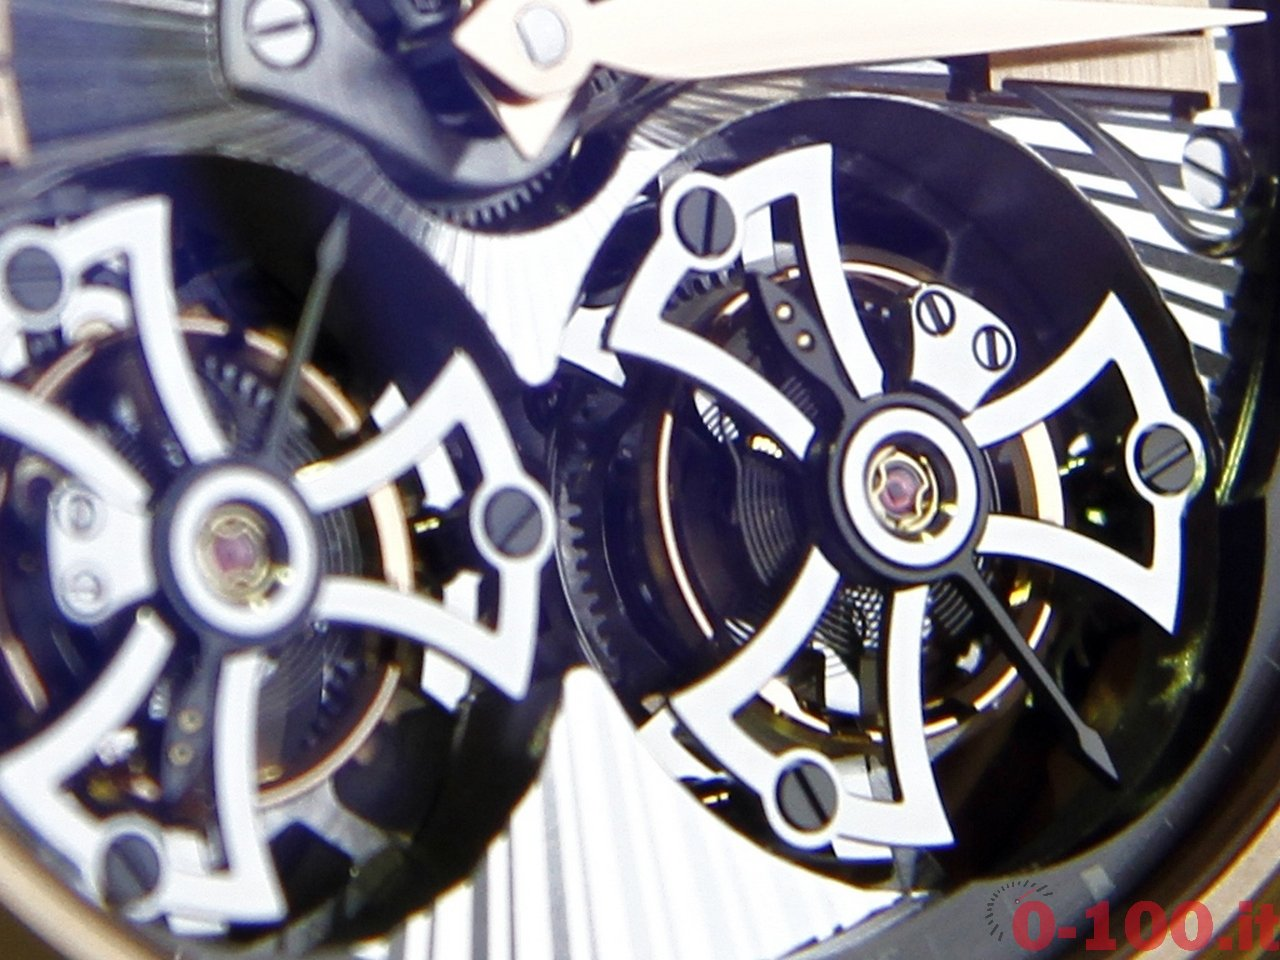 roger-dubuis-hommage-double-flying-tourbillon-0-100_24